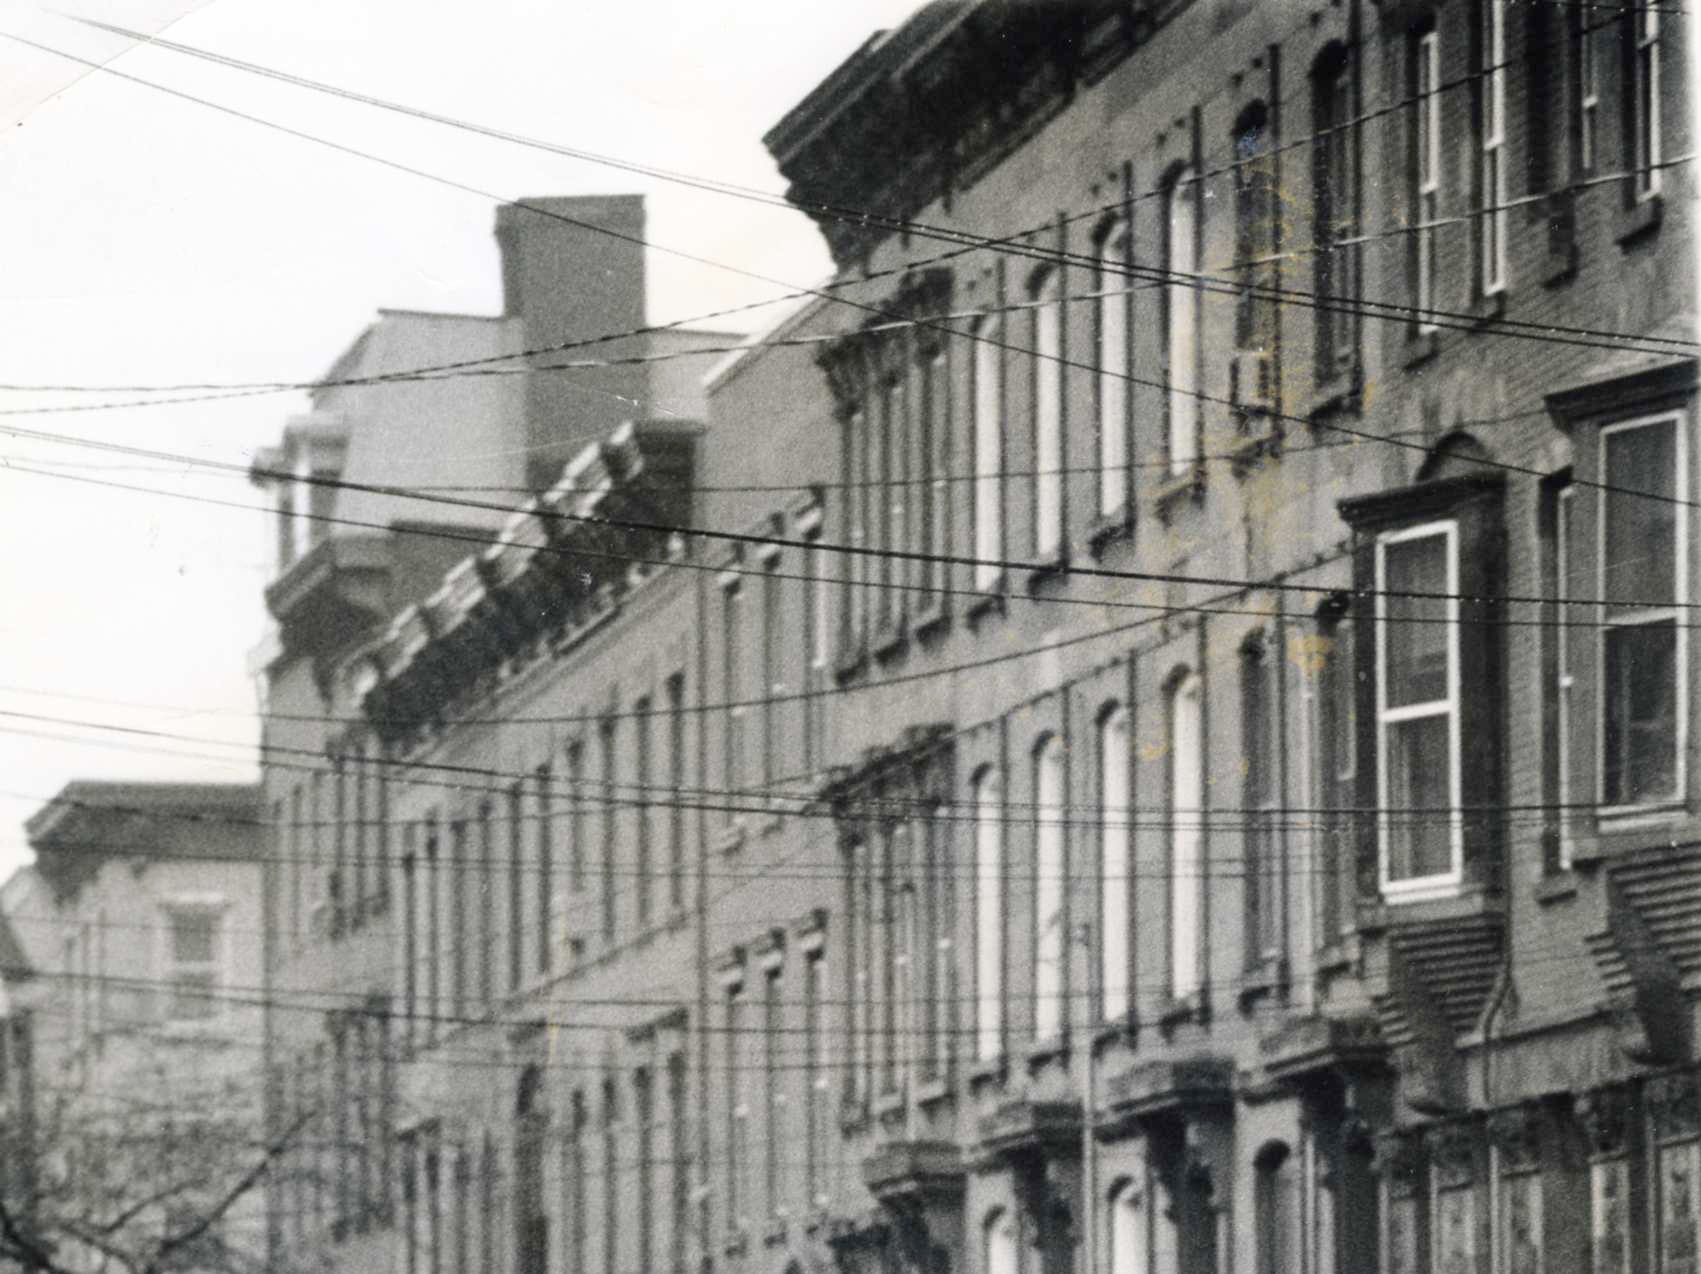 A row of Hoboken's turn-of-the century Brownstones as they were in 1973.